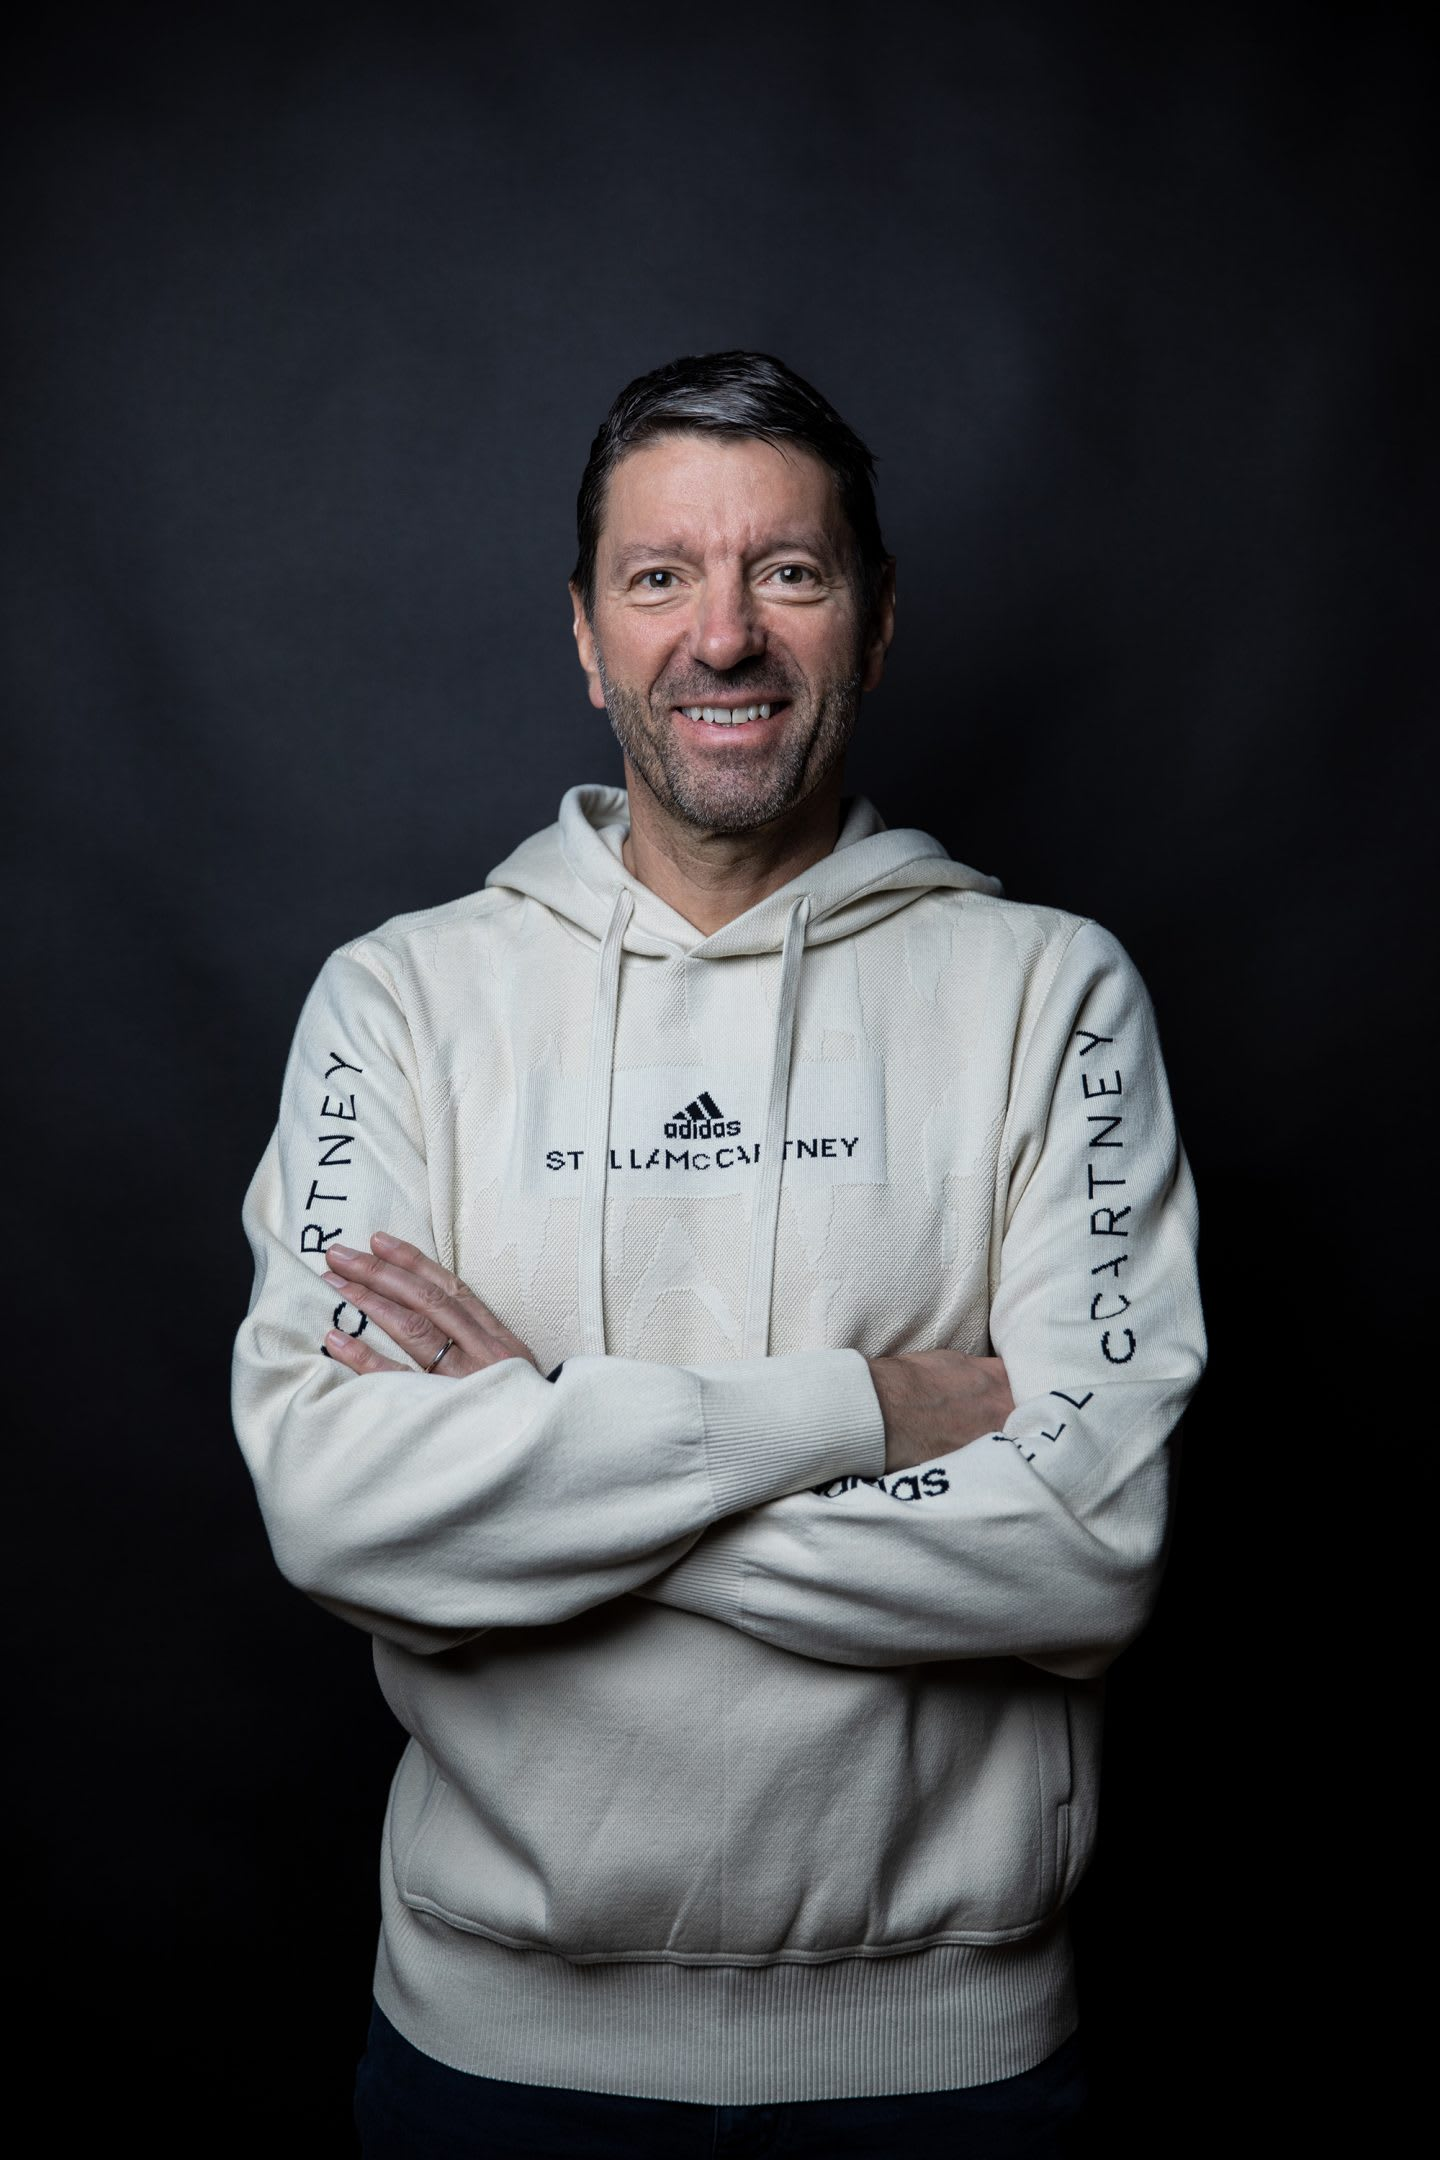 Man wearing white hooded sweatshirt standing with arms folded, Kasper, Rorsted, CEO, adidas, sports, company